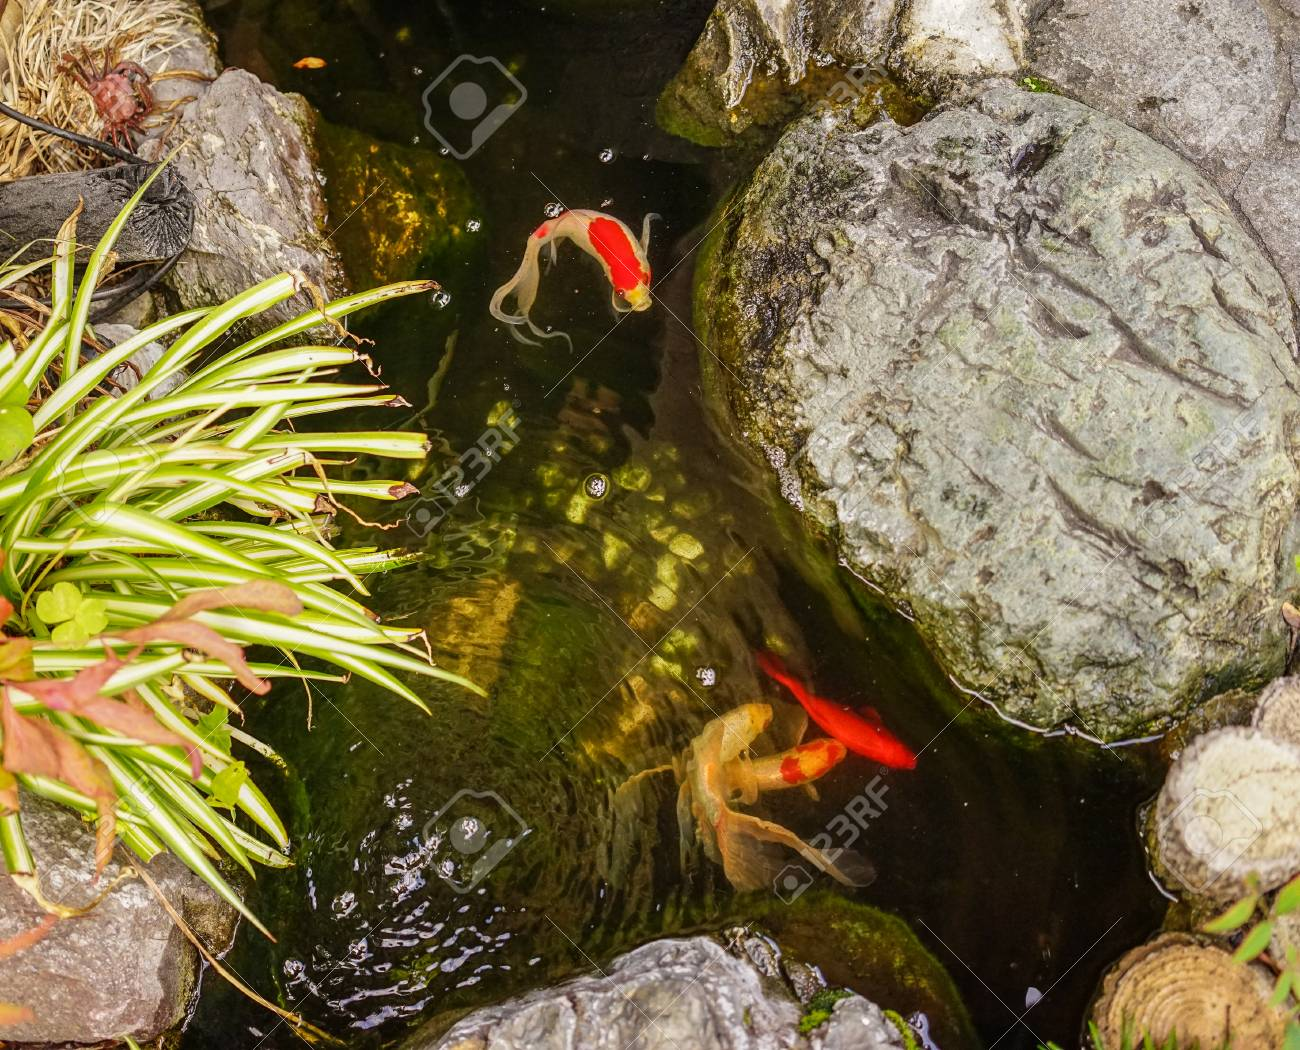 Koi Fish On Pond For Decorations In Japanese Garden